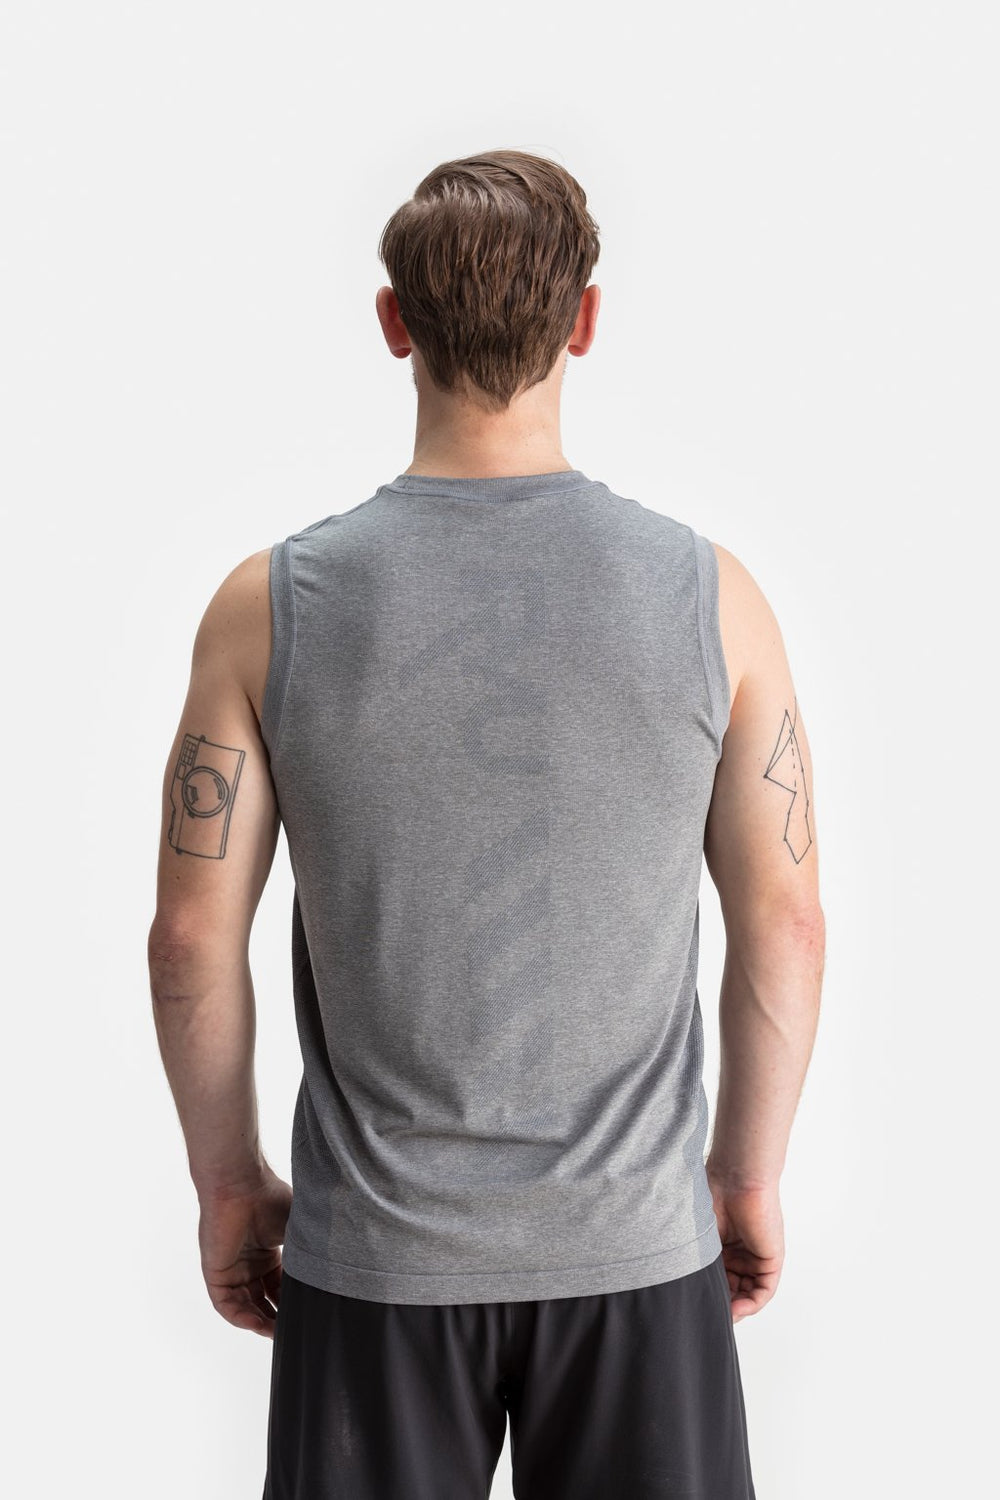 RYU Mens Vapor Sleeveless Tank in Titanium